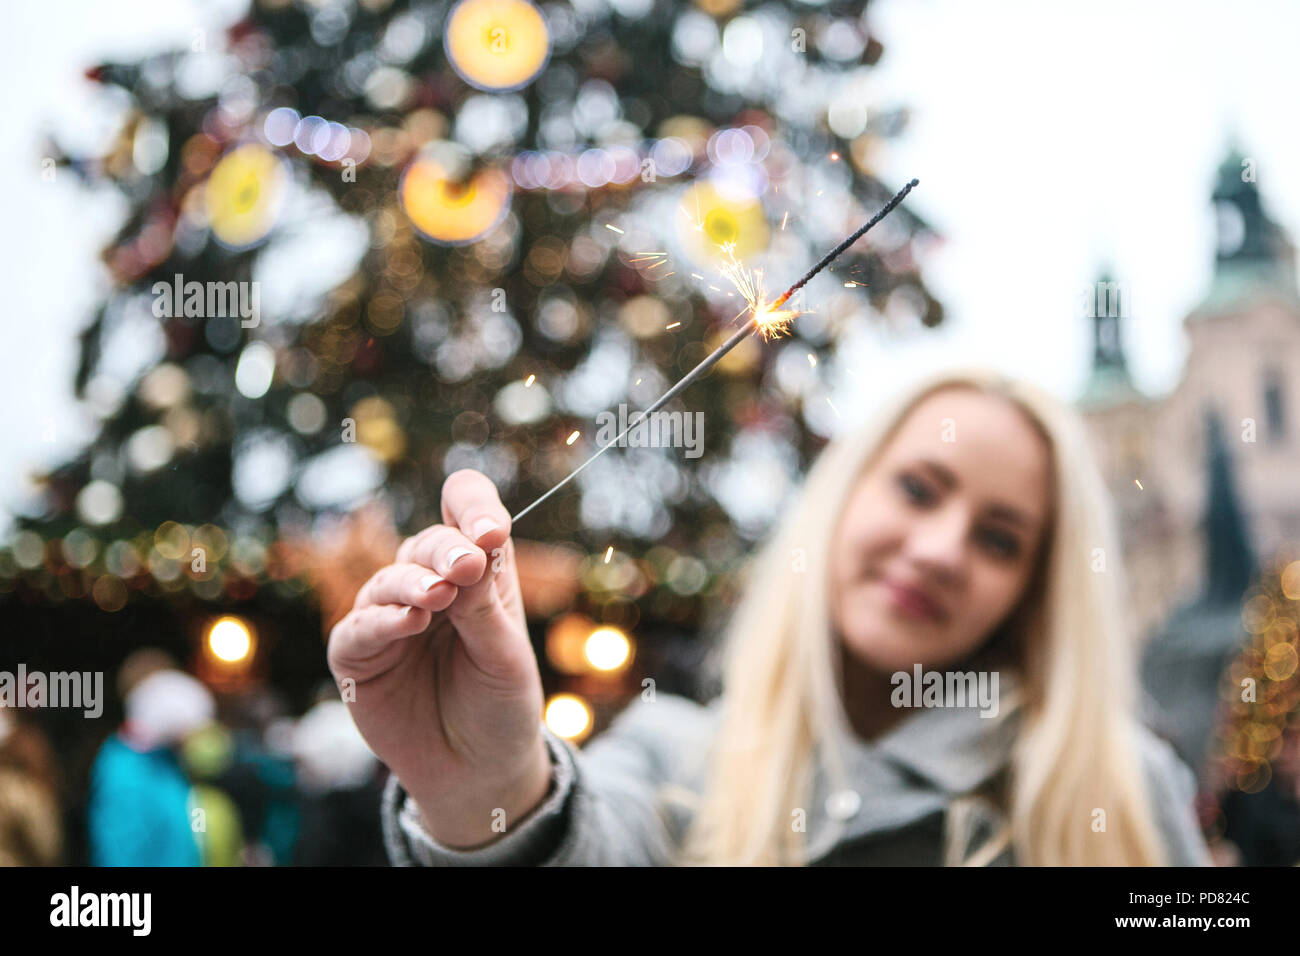 The girl is holding a Bengal fire in her hand during the celebration of Christmas. Old Town Square and Christmas Tree in Prague in the Czech Republic in the background. - Stock Image